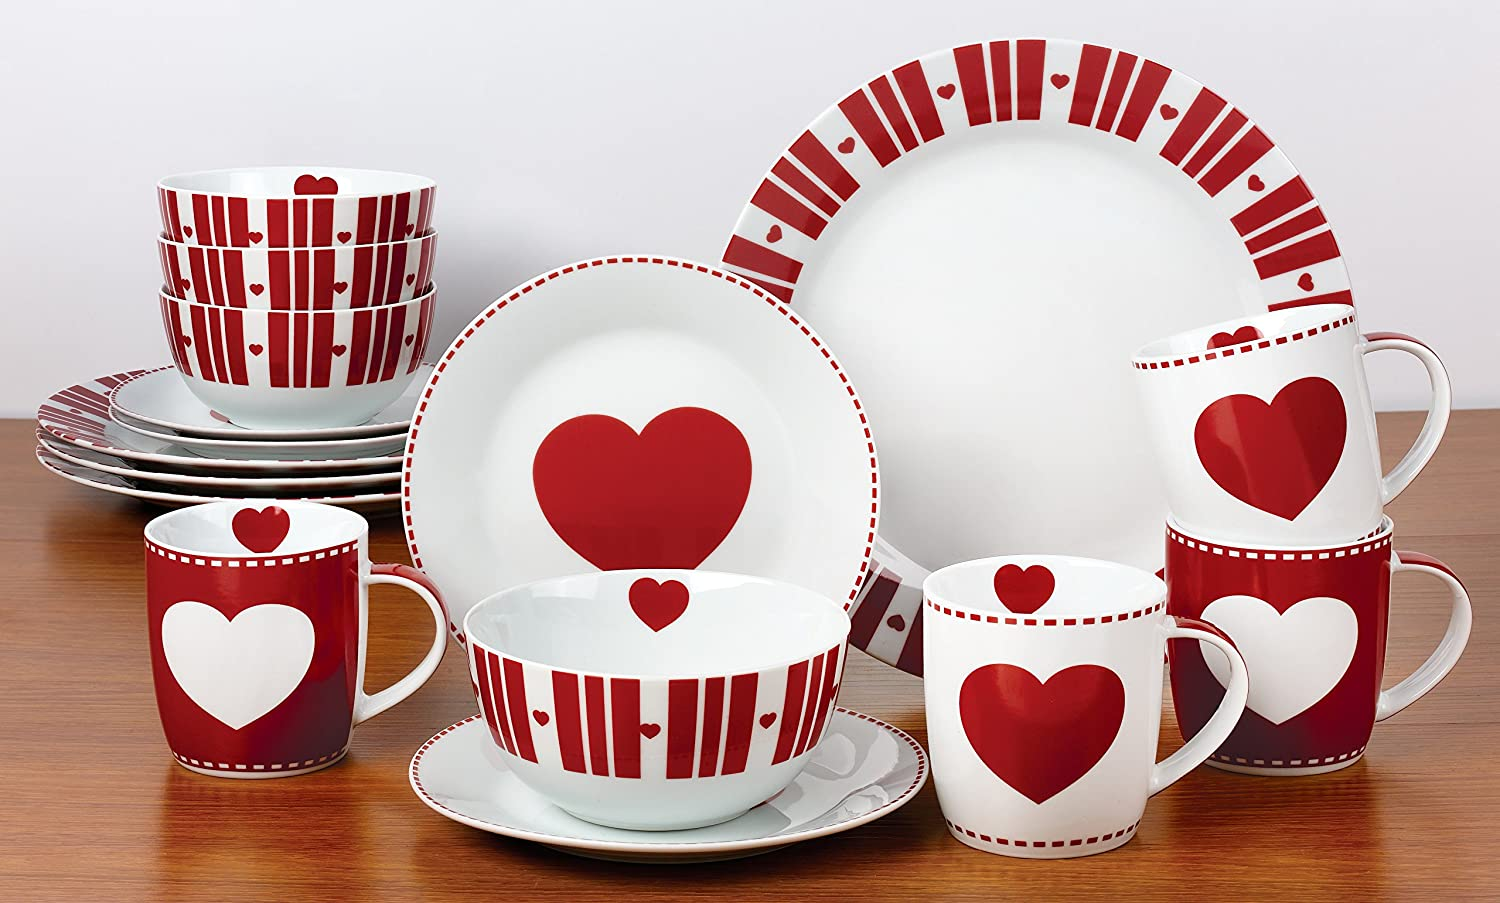 & 16 Piece Nordic Heart Dinner Set: Amazon.co.uk: Kitchen u0026 Home